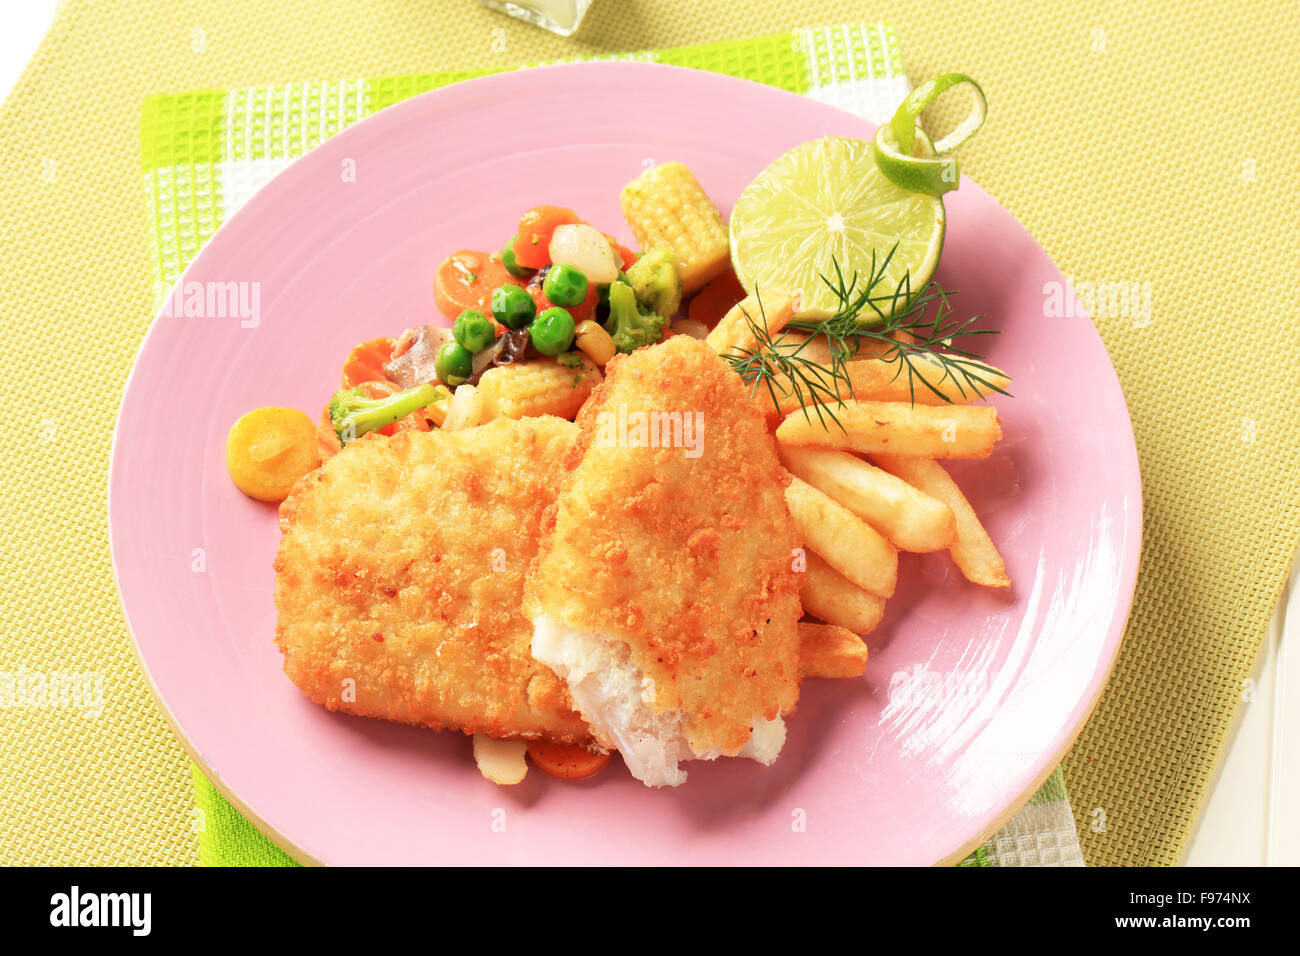 Fried breaded fish fillets with  mixed vegetables and French fries - Stock Image